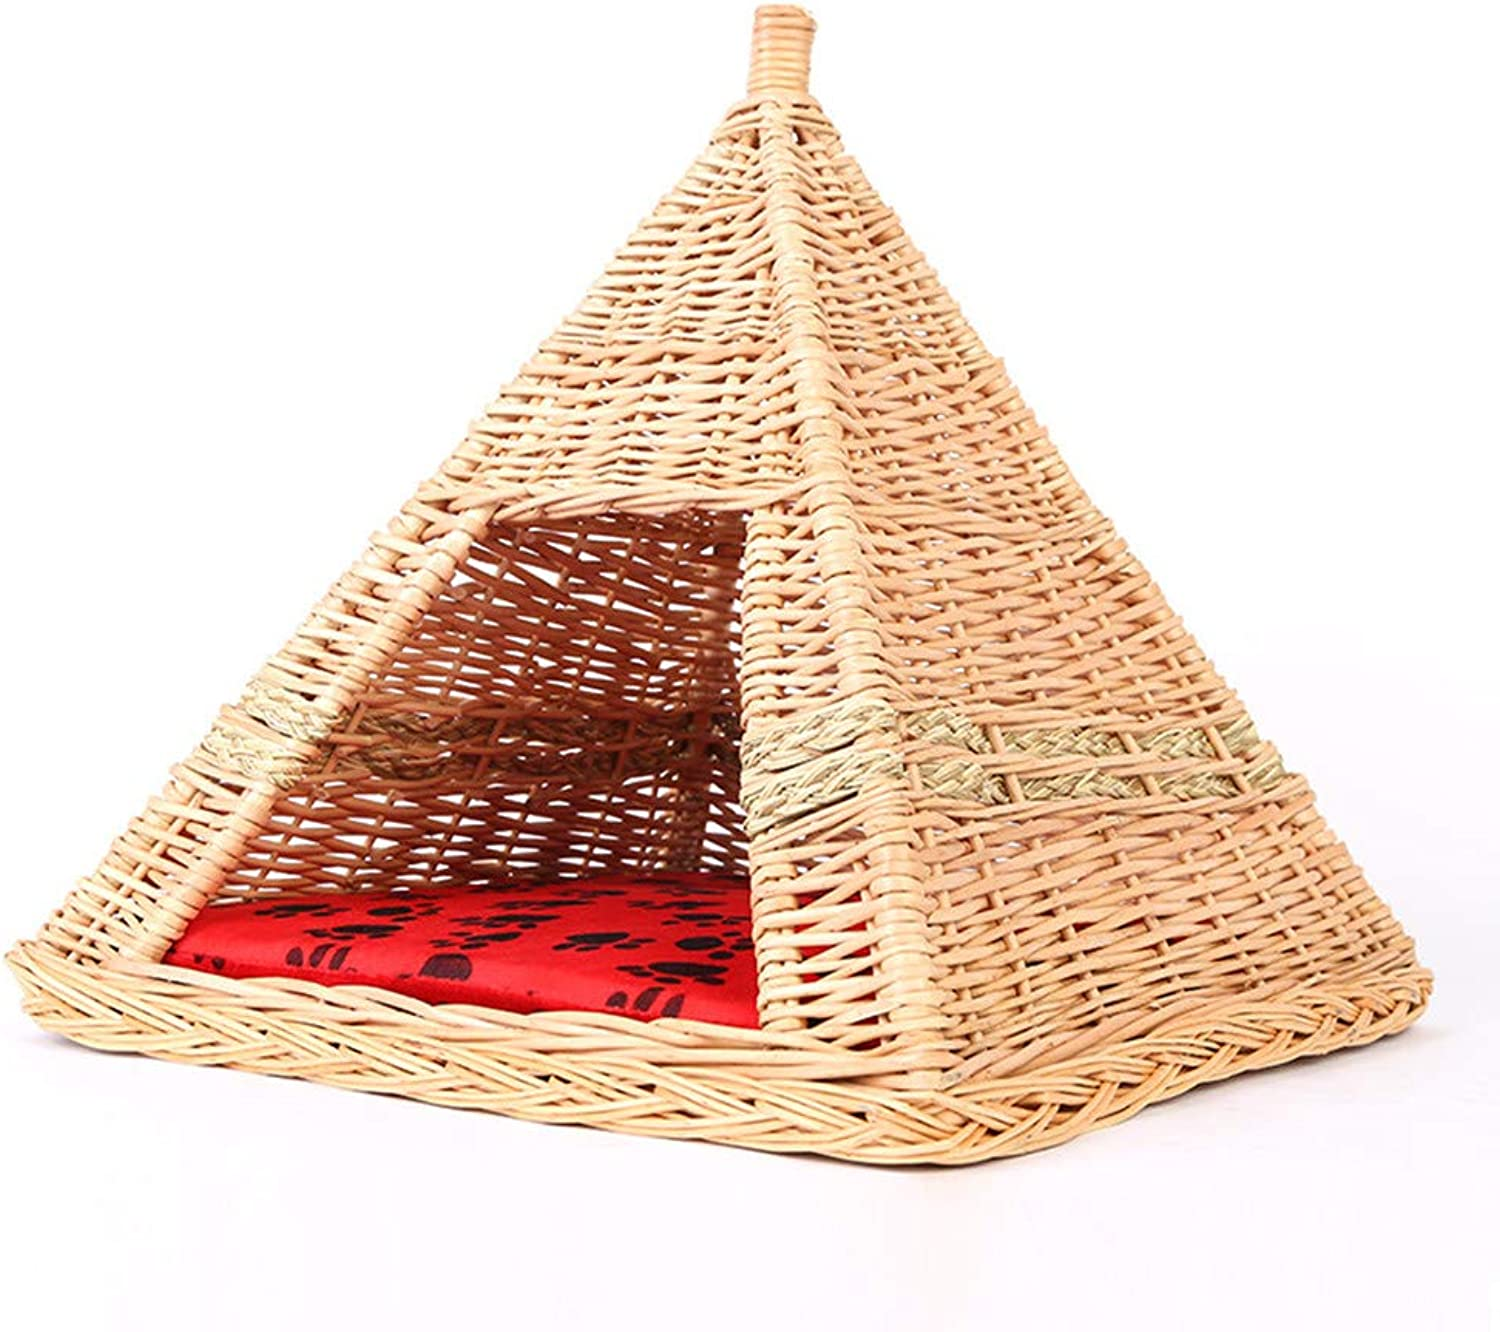 Rattan Wicker Summer House Small Dog Cat Litter Kennel Pet Nest Supplies Detachable Washable Four Seasons Universal Dog Cat Litter